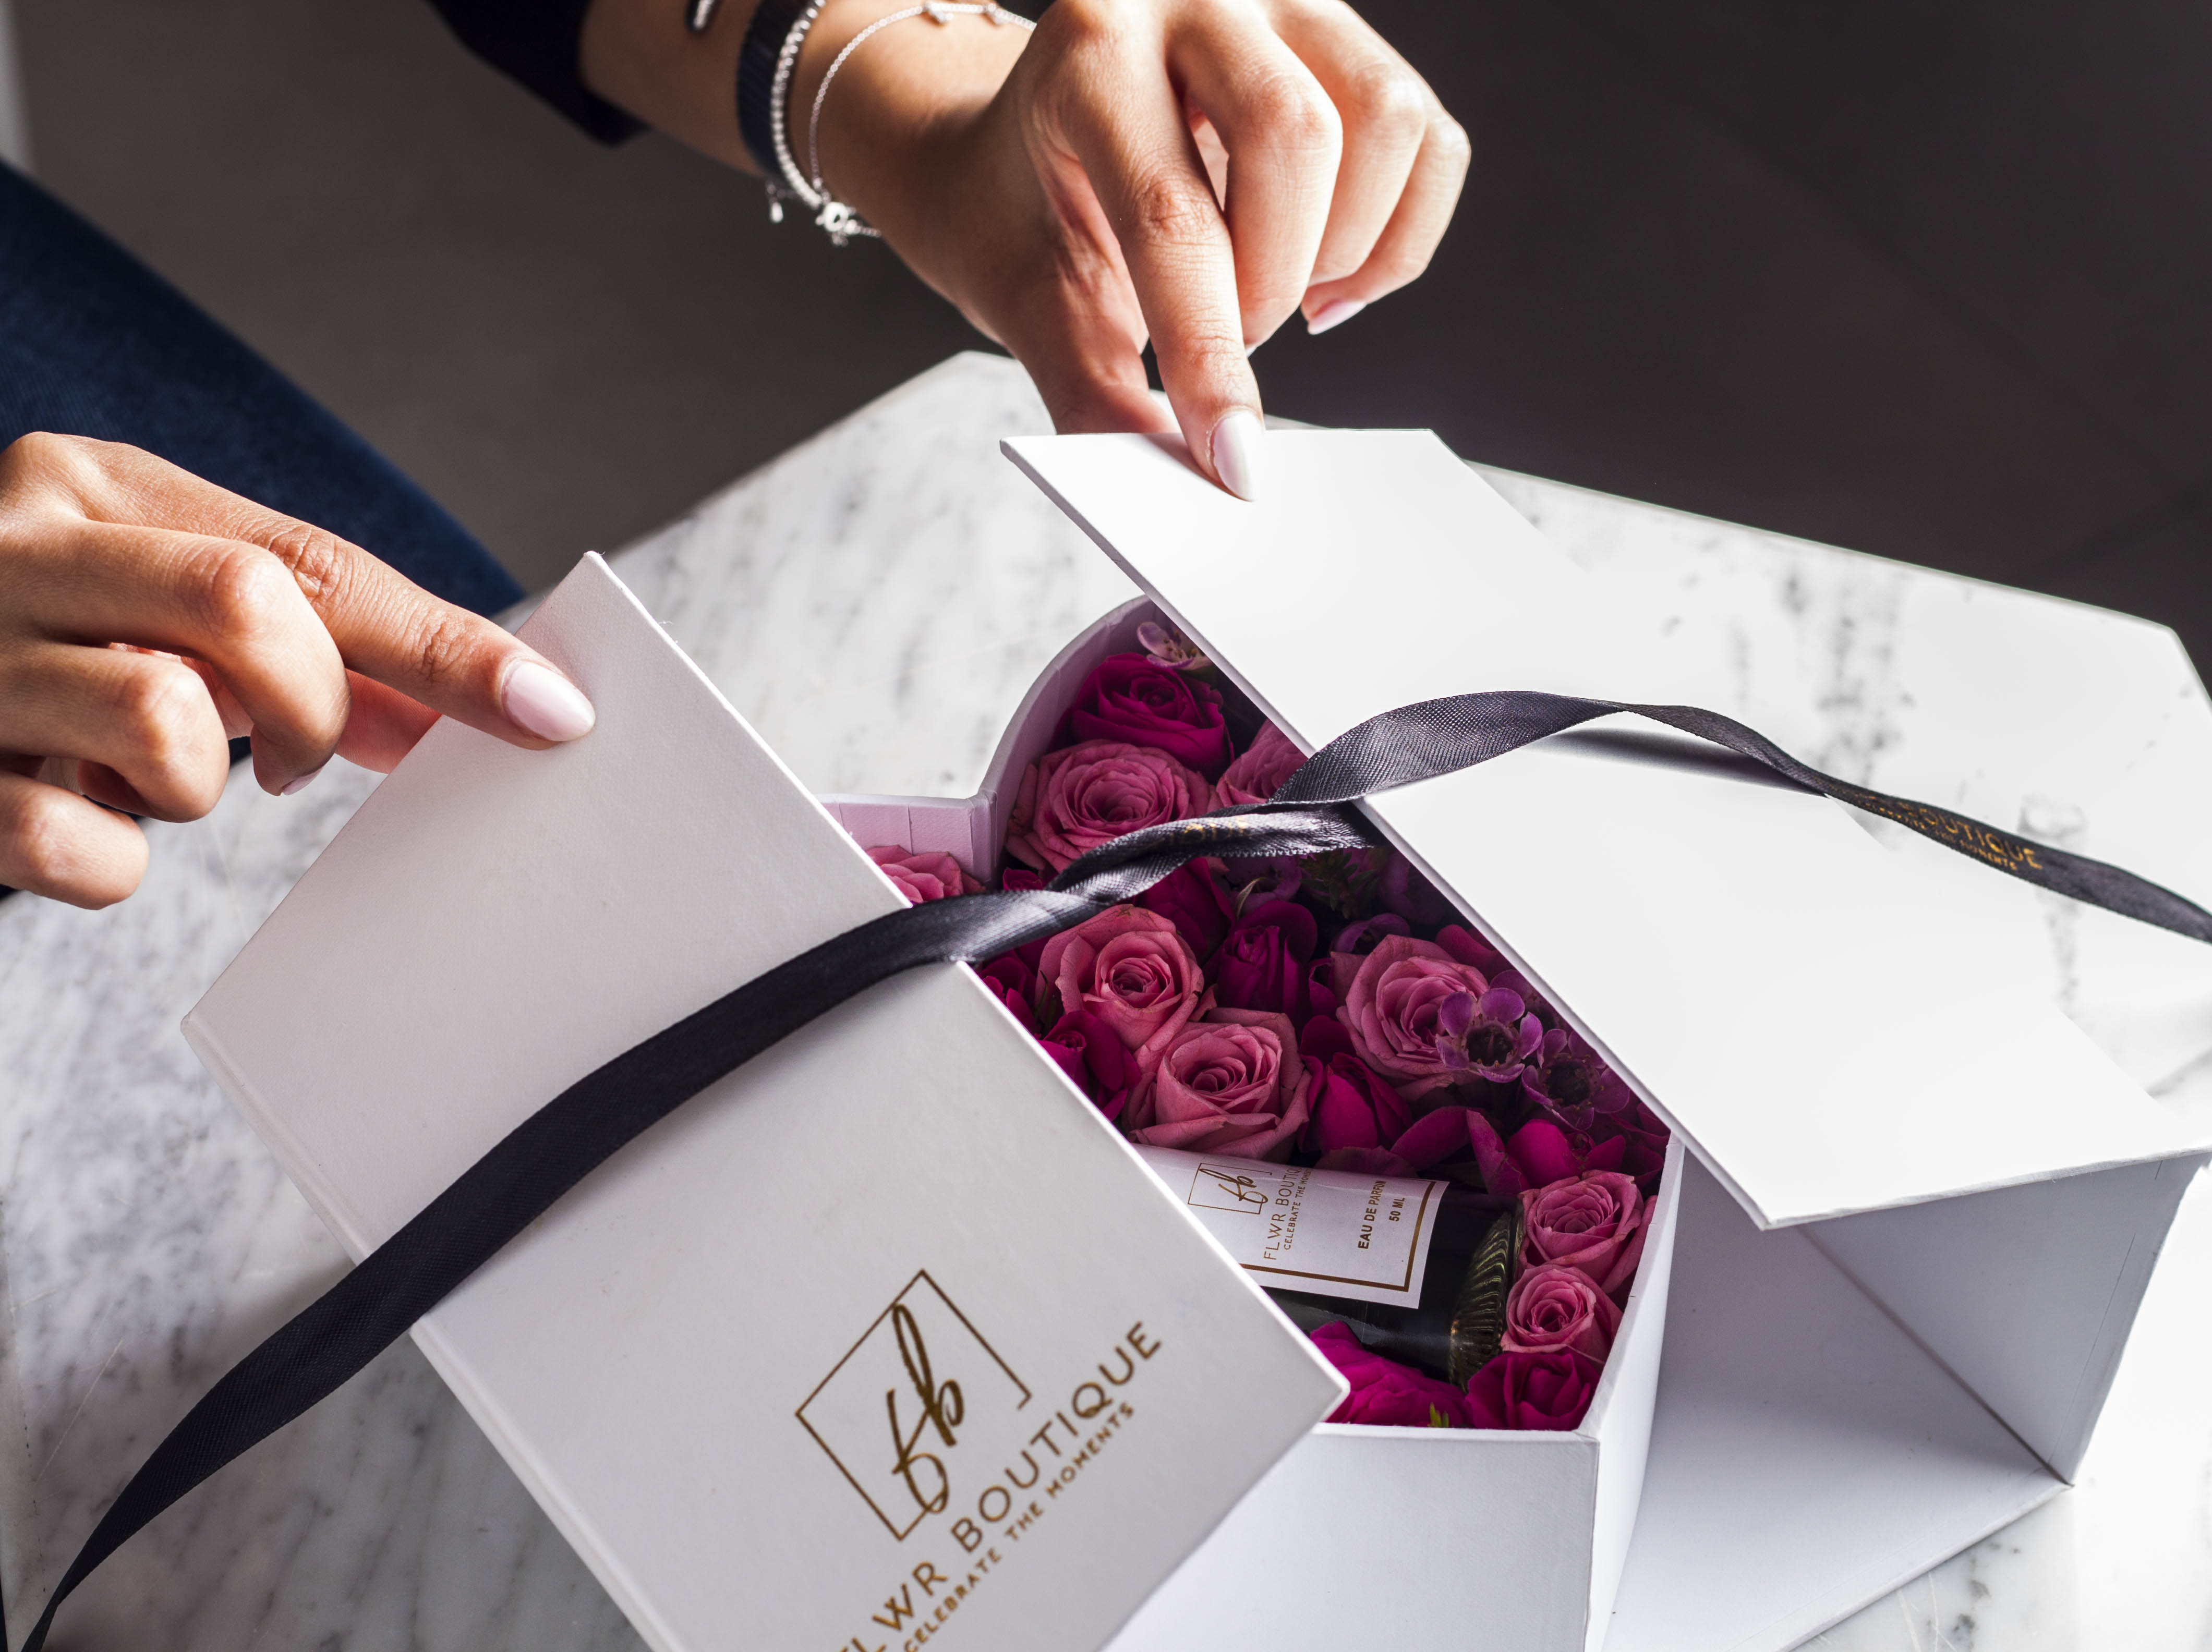 Aghla Habiba box - perfume Shopping